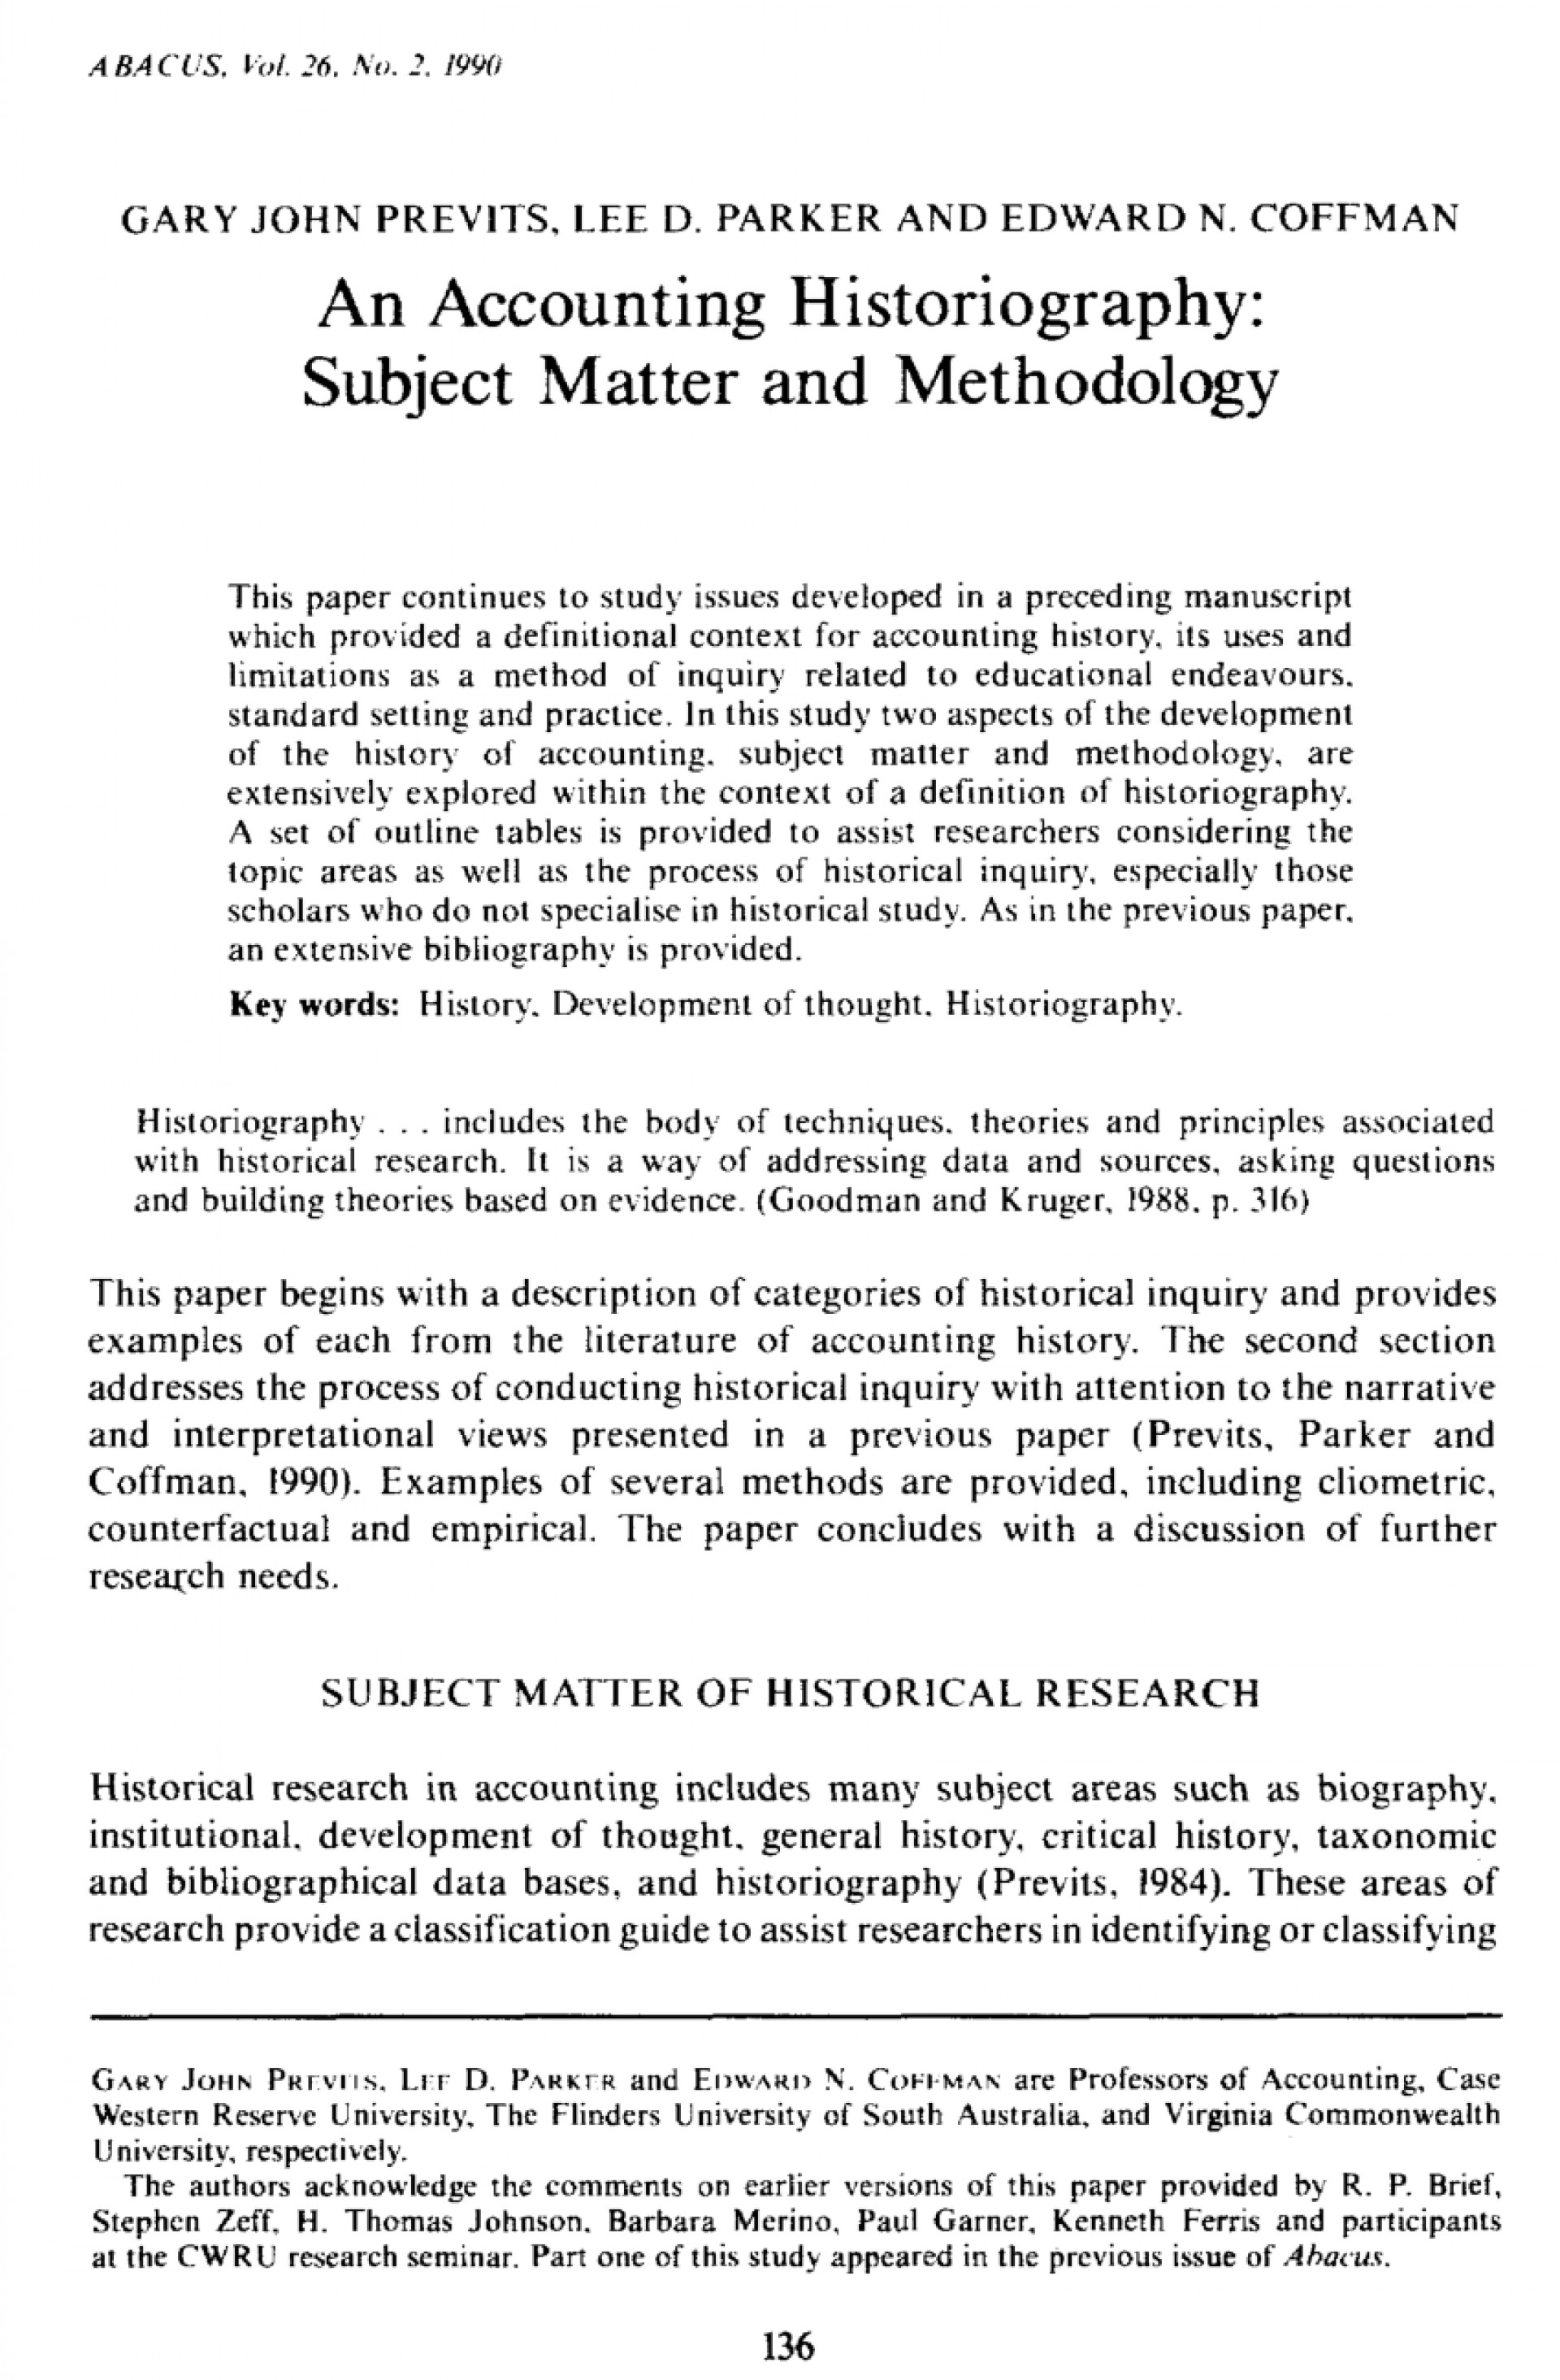 012 Art History Research Paper Example Staggering Outline Template Sample 1920